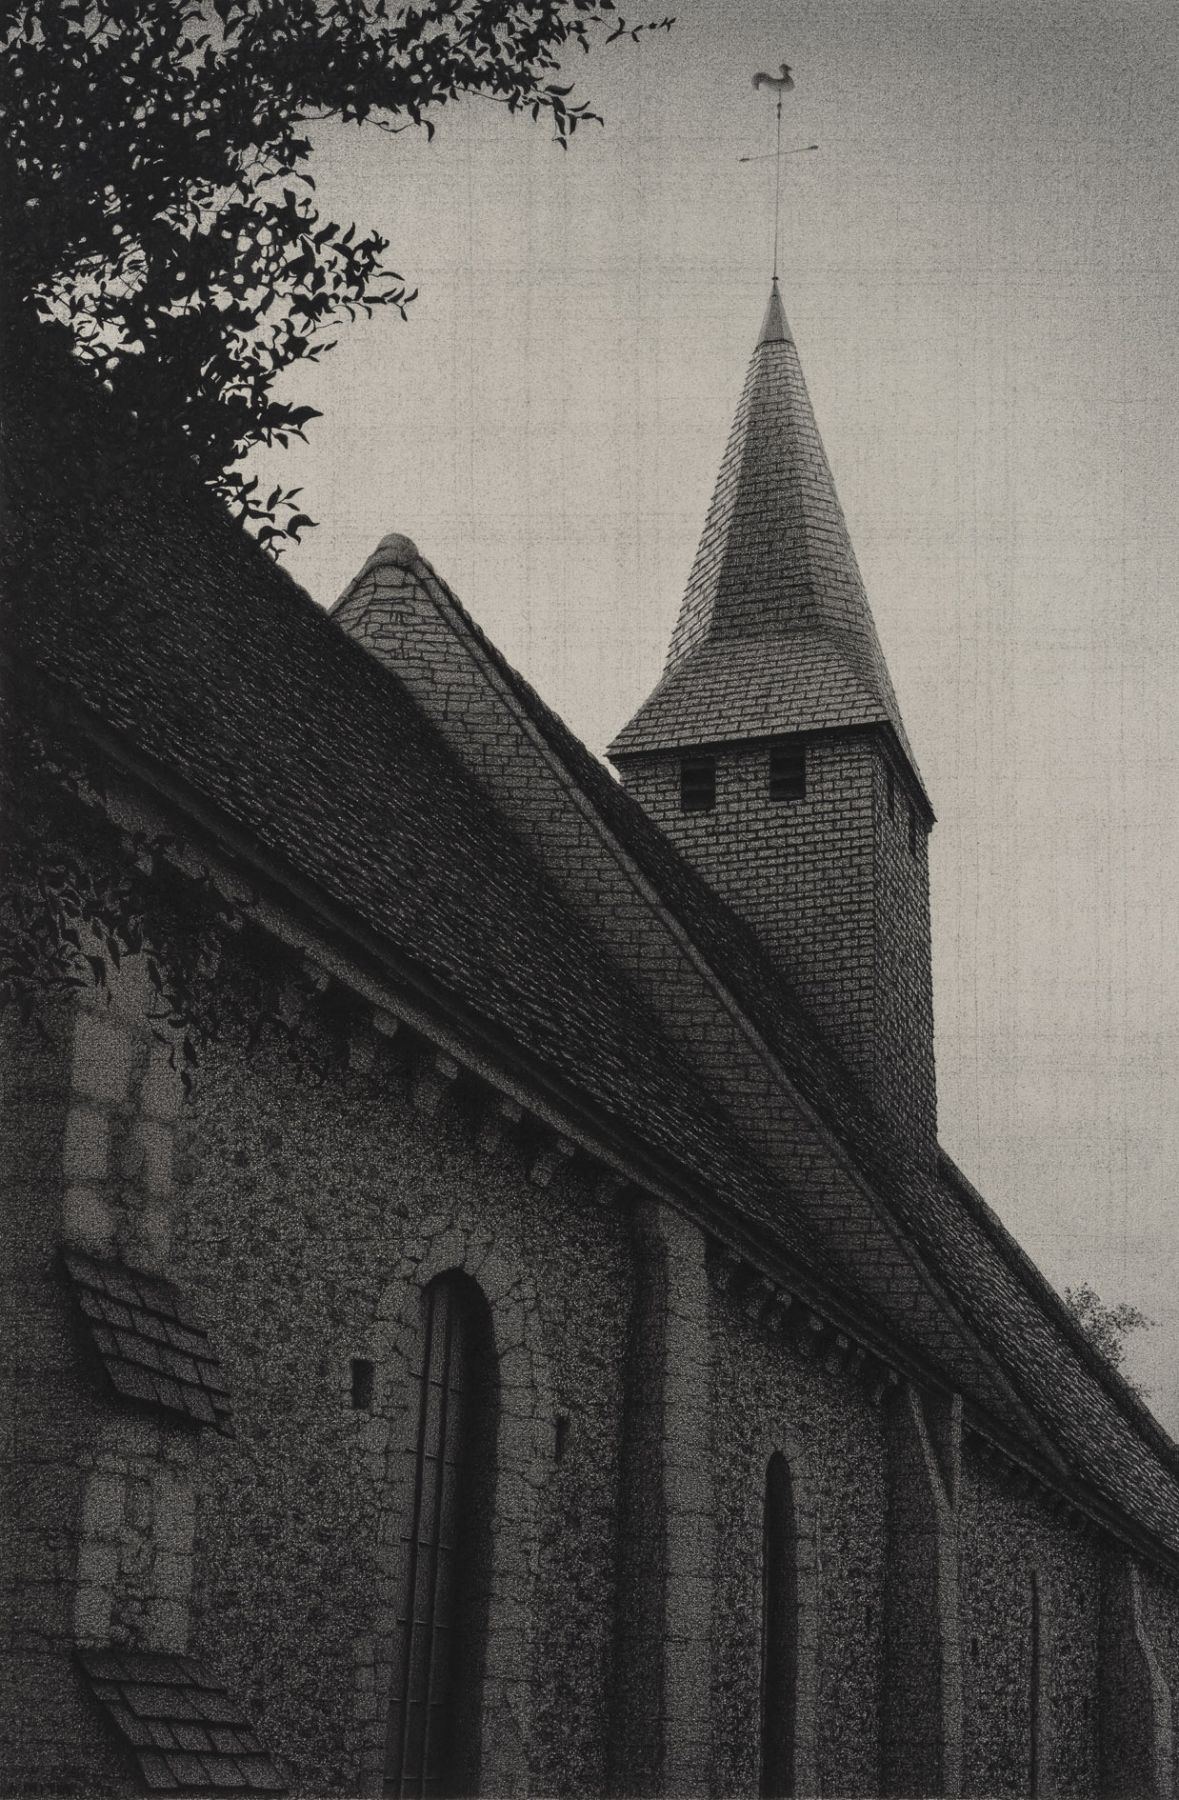 anthony mitri, Chapelle 3, Normandy, France, 2012, charcoal on paper, 19 3/4 x 13 1/8 inches